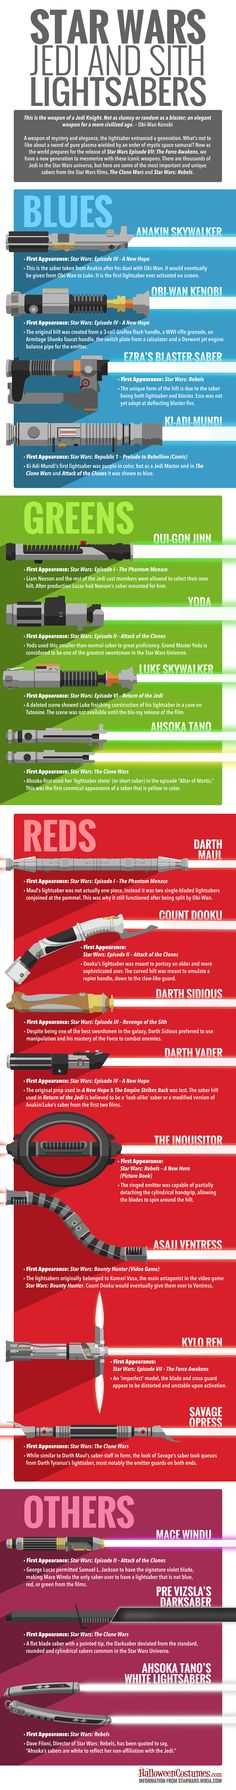 Your guide to the most iconic Lightsabers in the Star Wars cannon